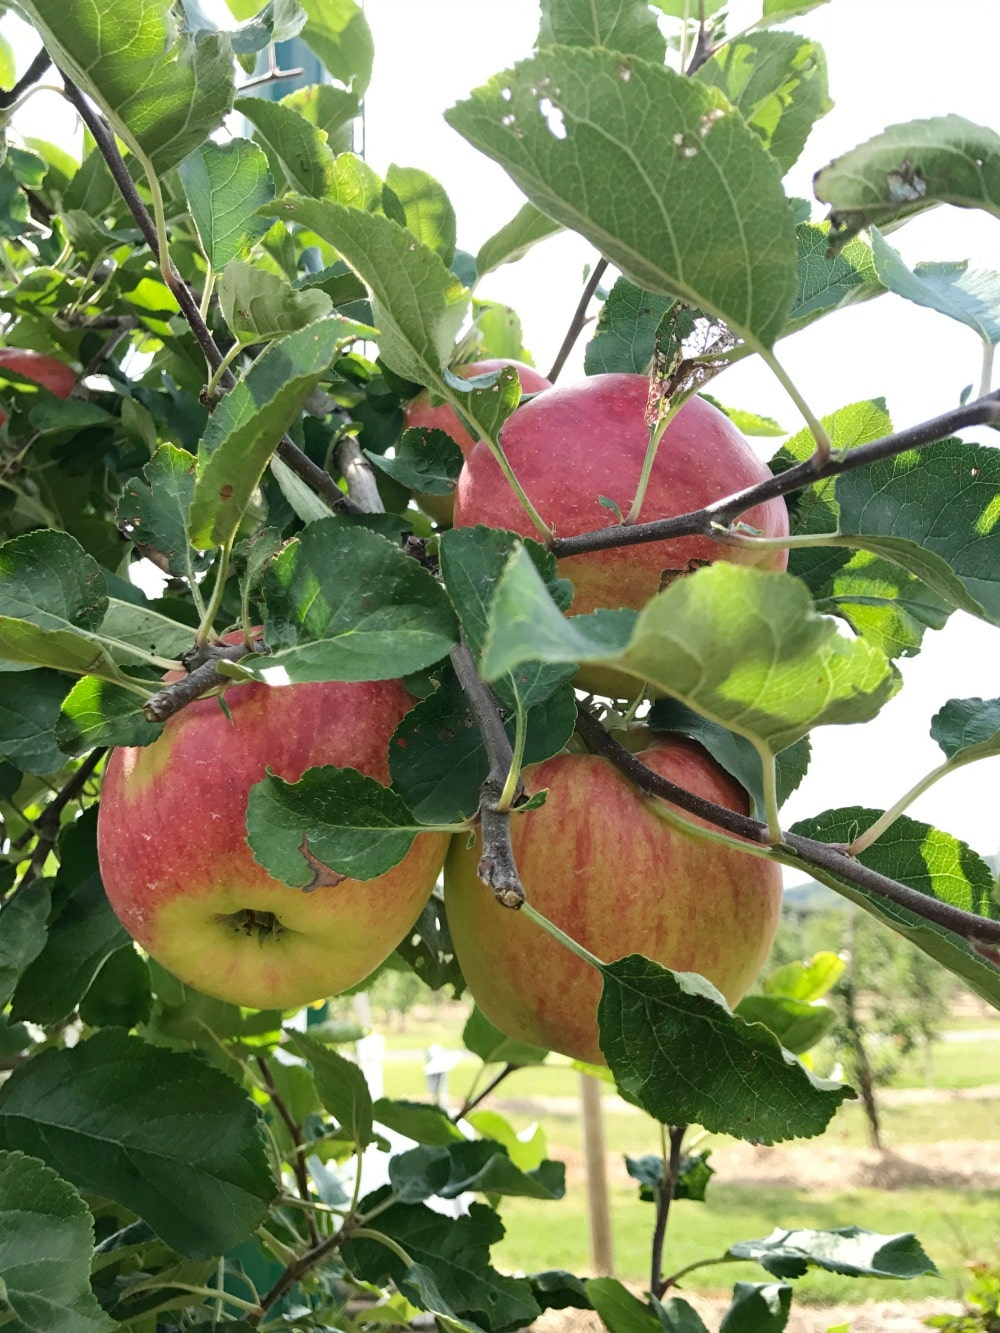 Chudleigh's Apple Farm